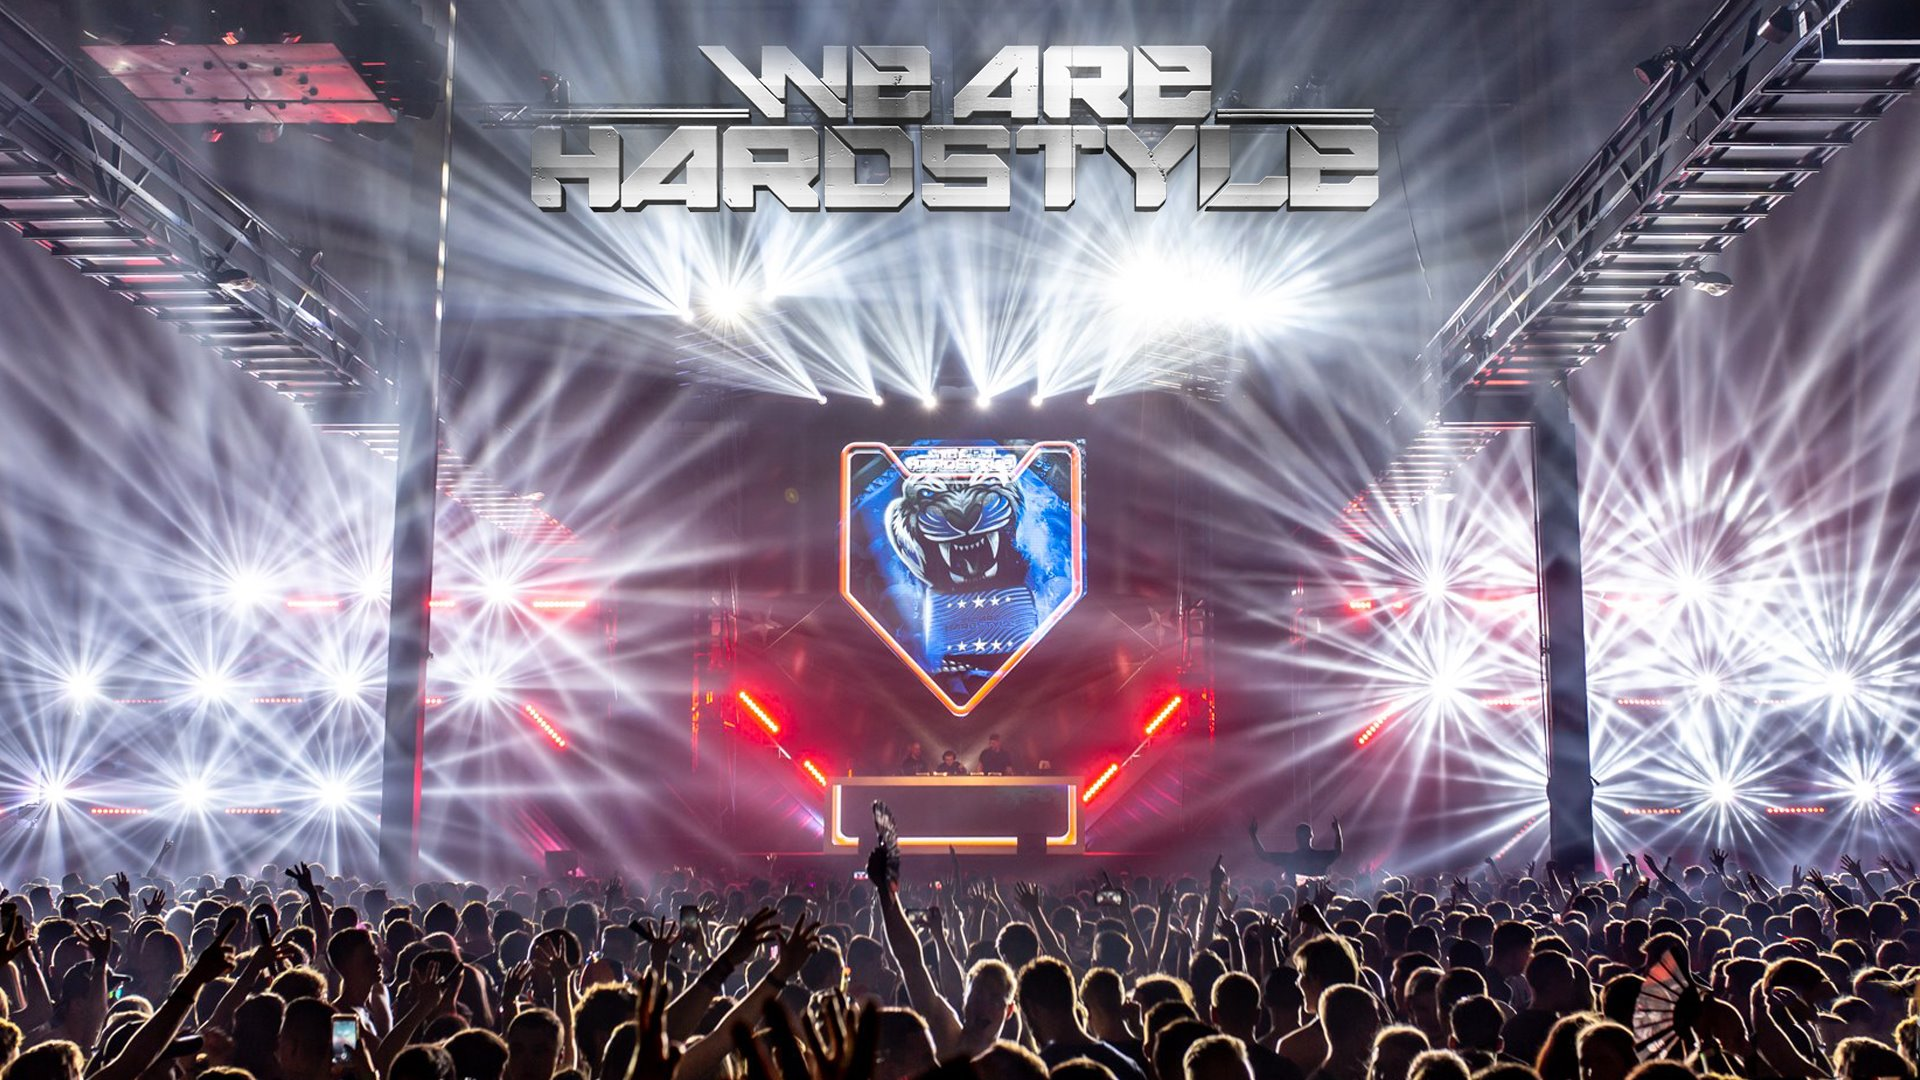 We are Hardstyle 2021